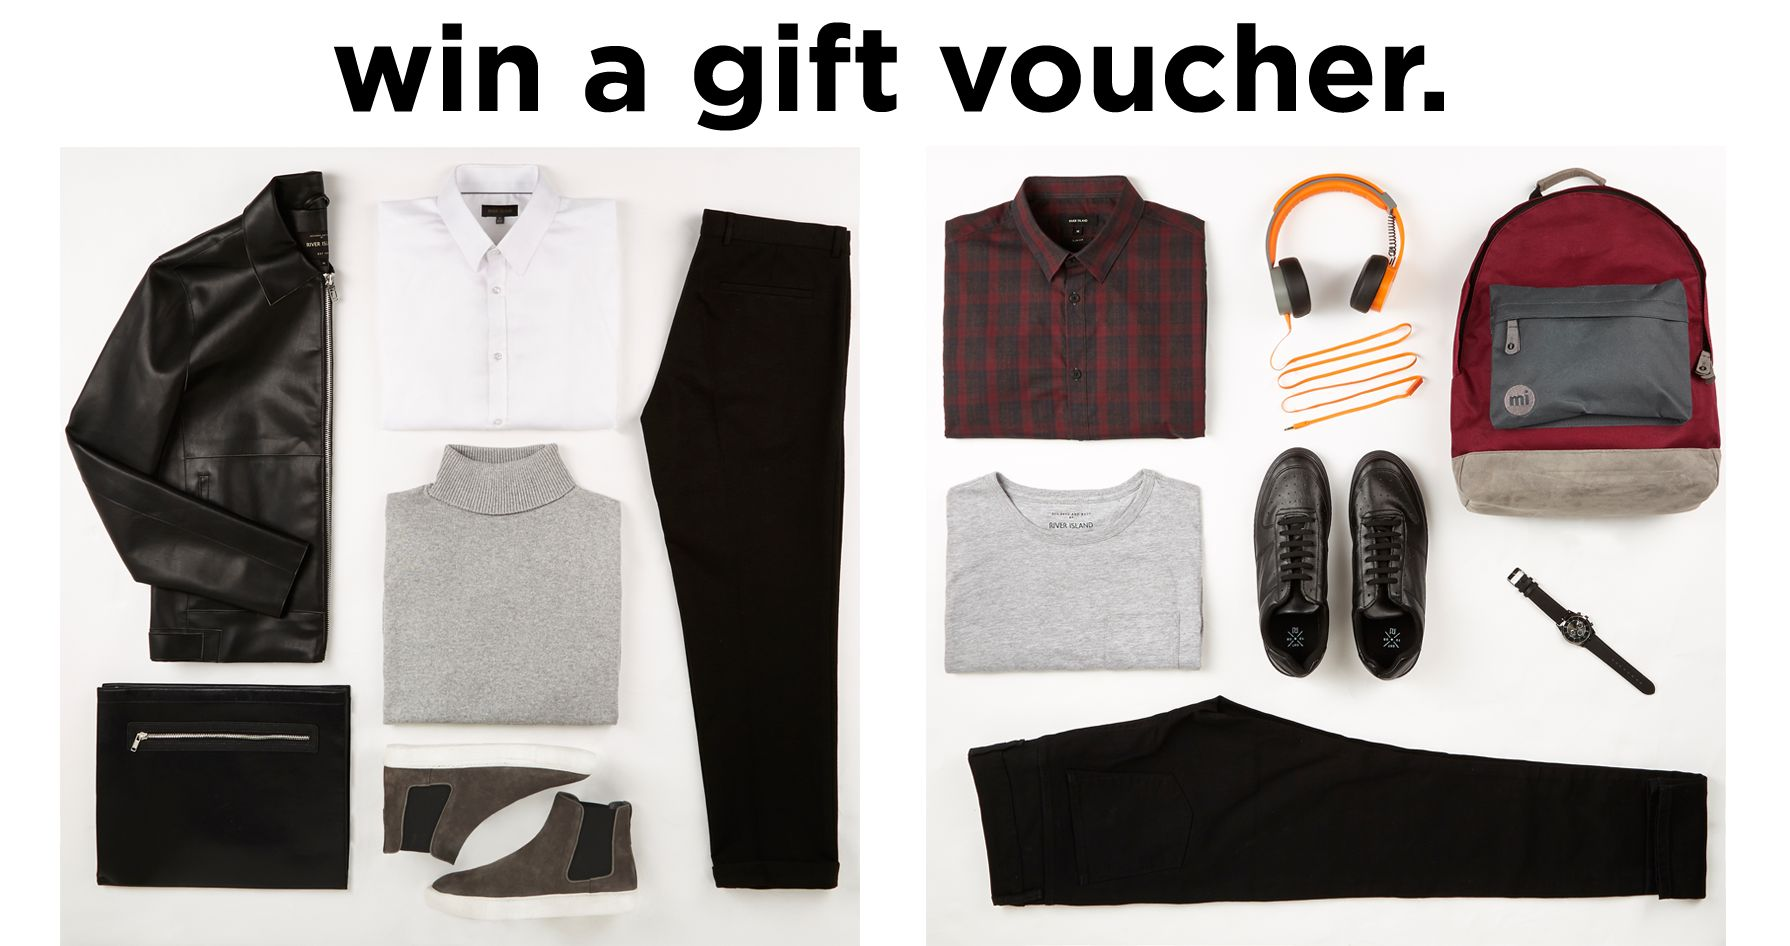 WIN A GIFT VOUCHER WITH OUR MENSWEAR OUTFIT GRID COMPETITION